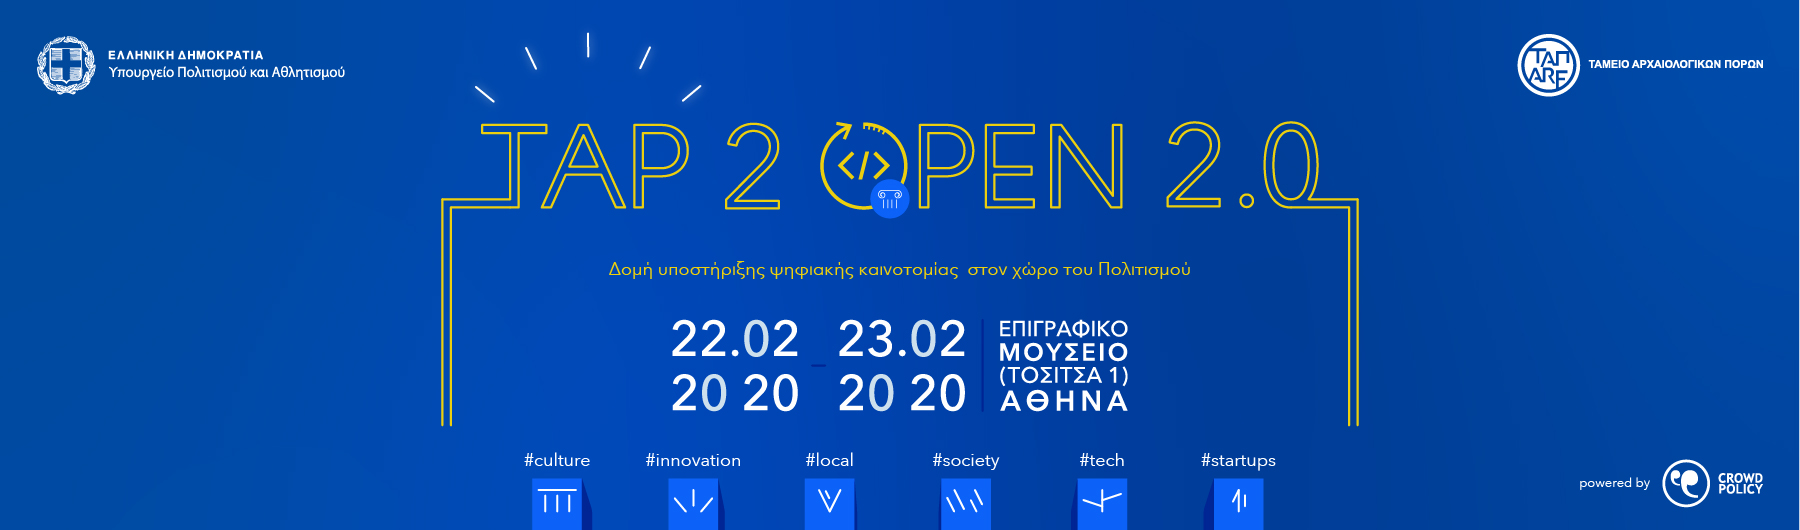 TAP 2 OPEN 2.0 Bootcamp Athens